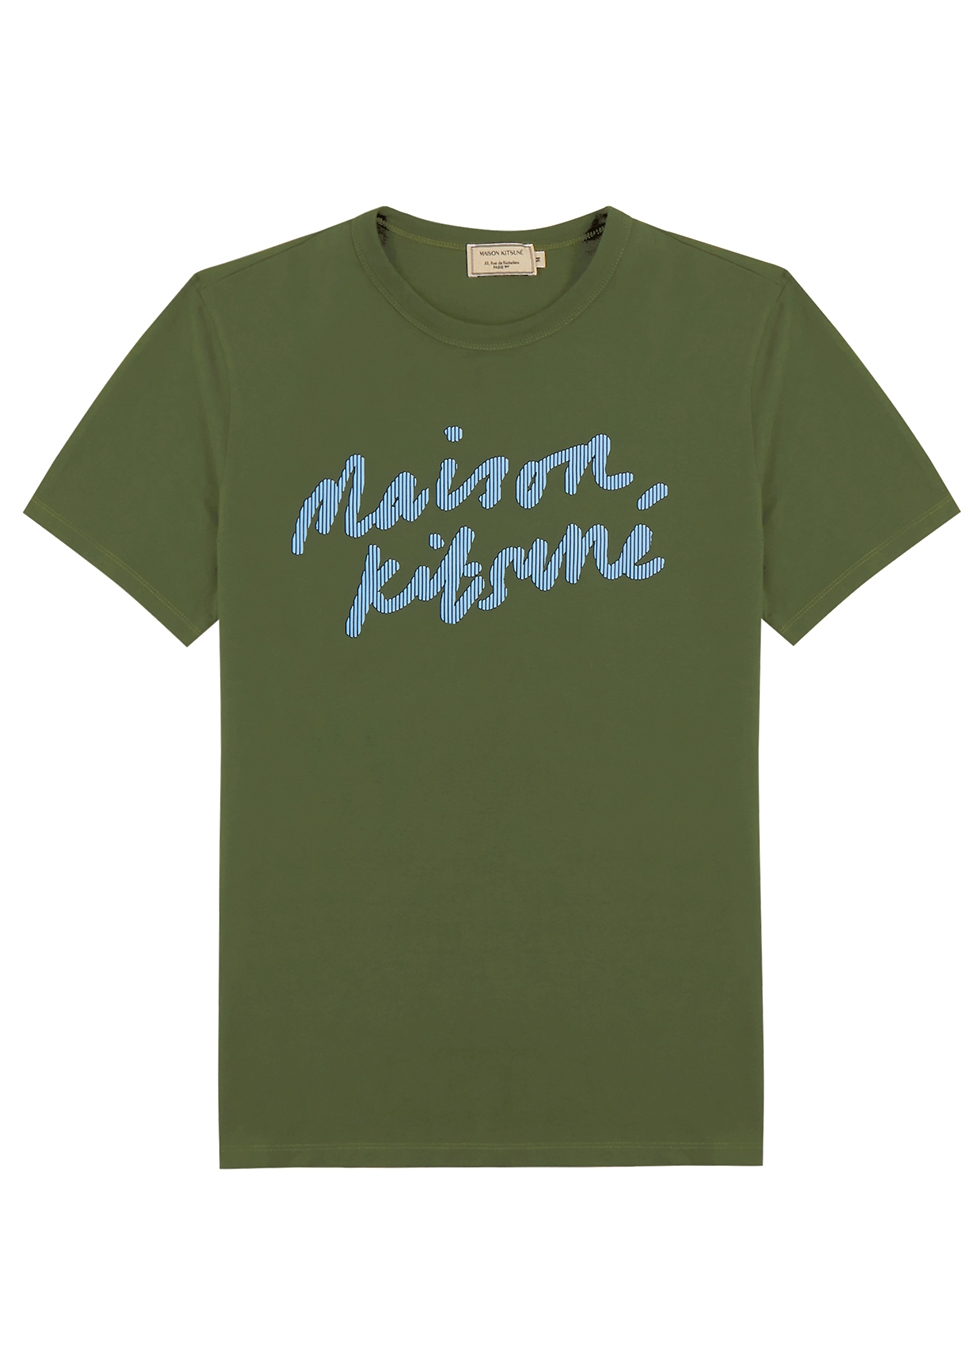 Army green printed cotton T-shirt